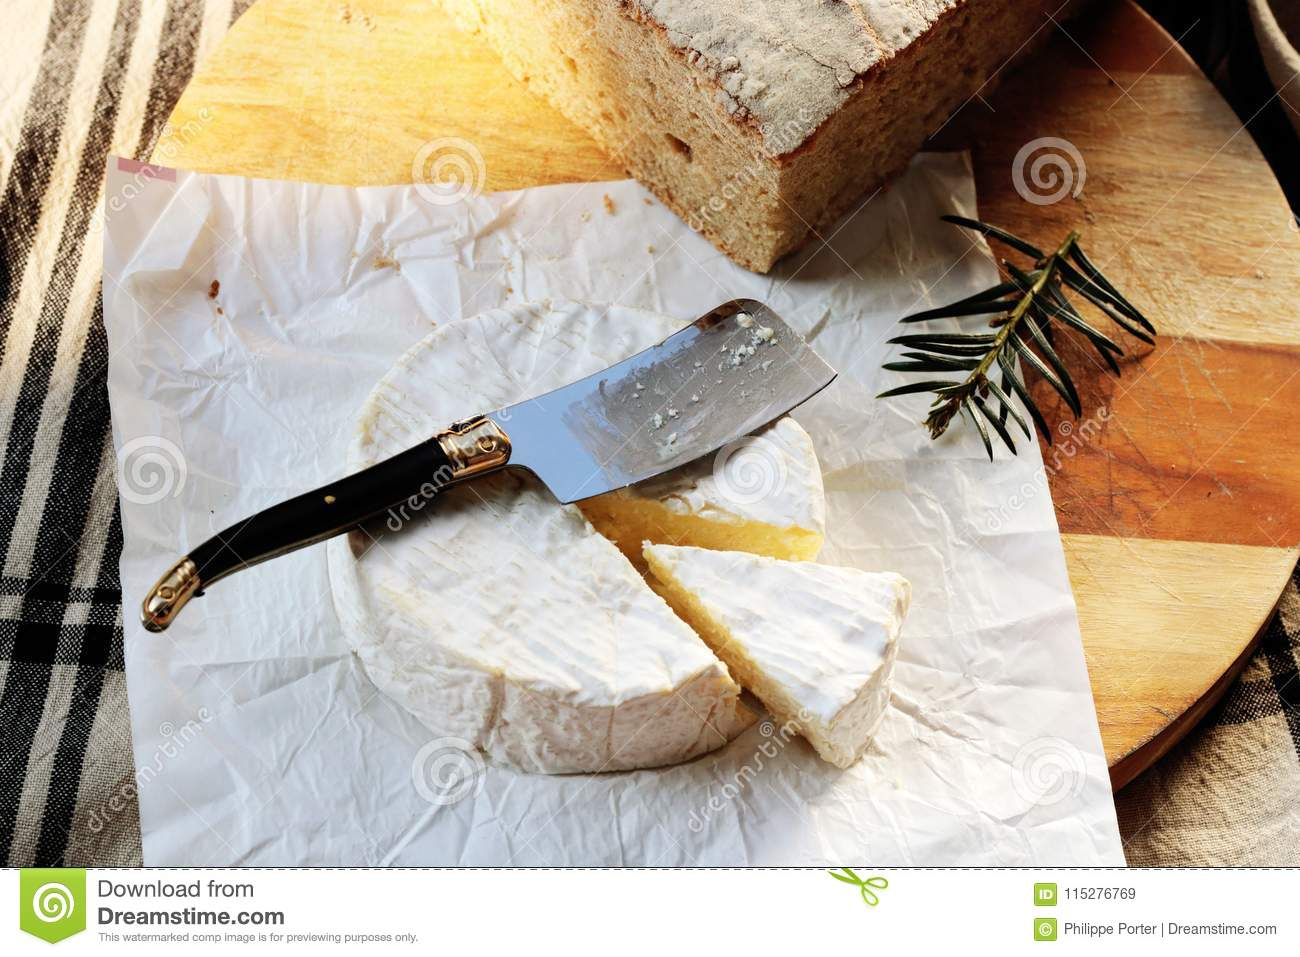 Camembert French Cheese Normandy France Stock Image Image Of Organic Flavor 115276769